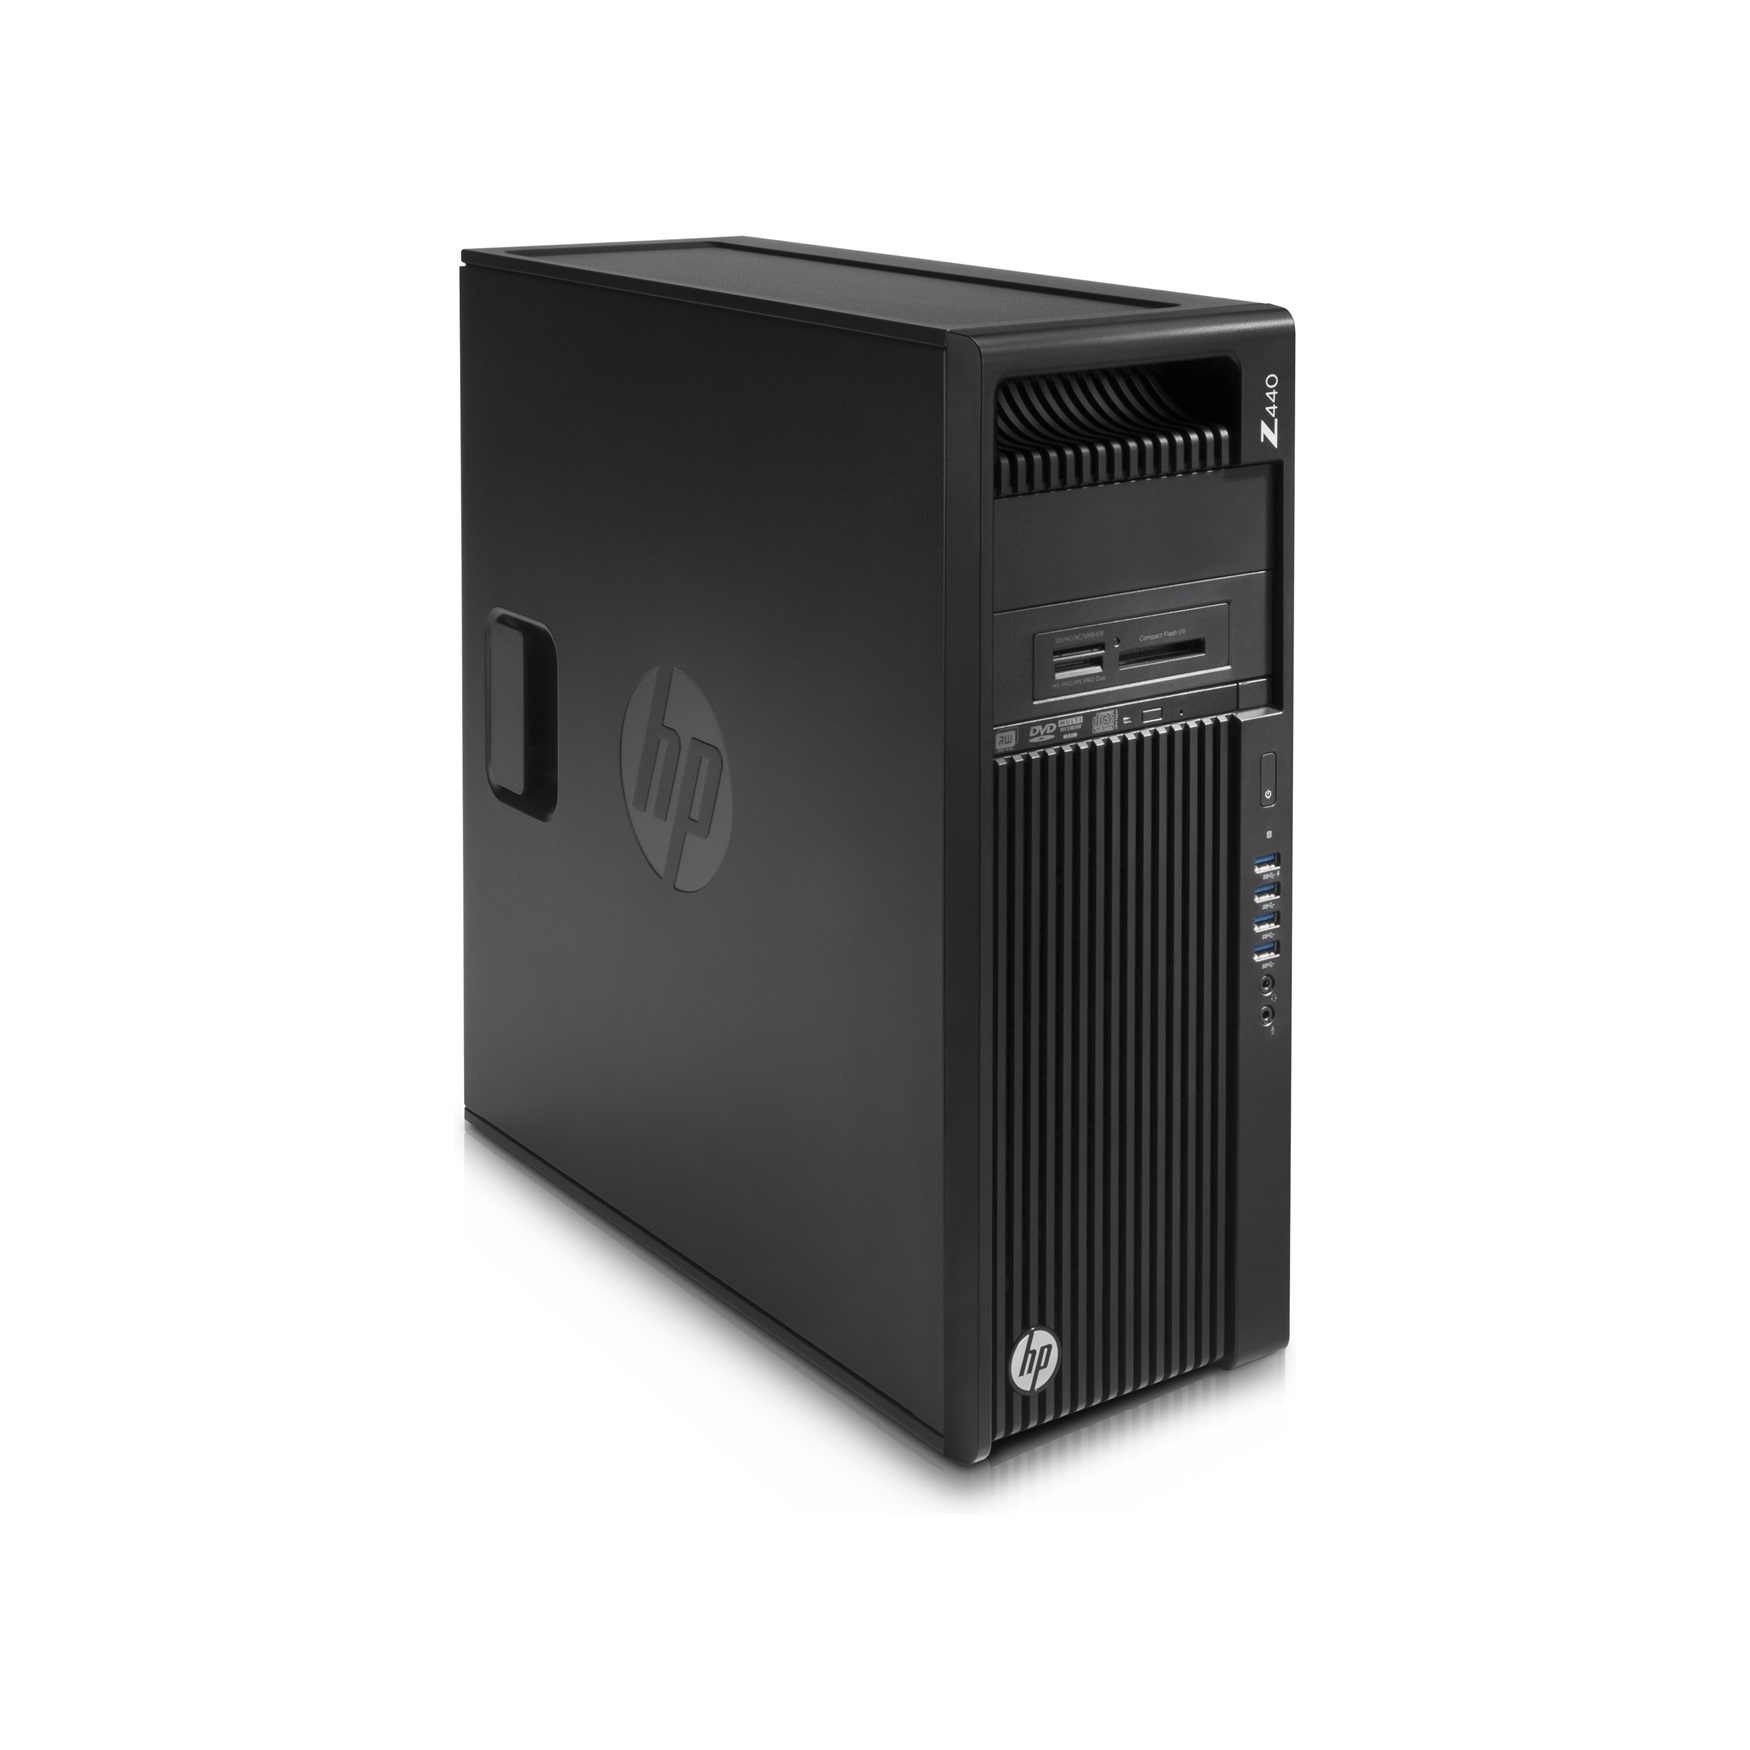 "HP Z440 F5W13AV E5-1620v4 2x8GB 1TB 3.5"" SATA BND-99090155 WIN10 PRO WORKSTATION"